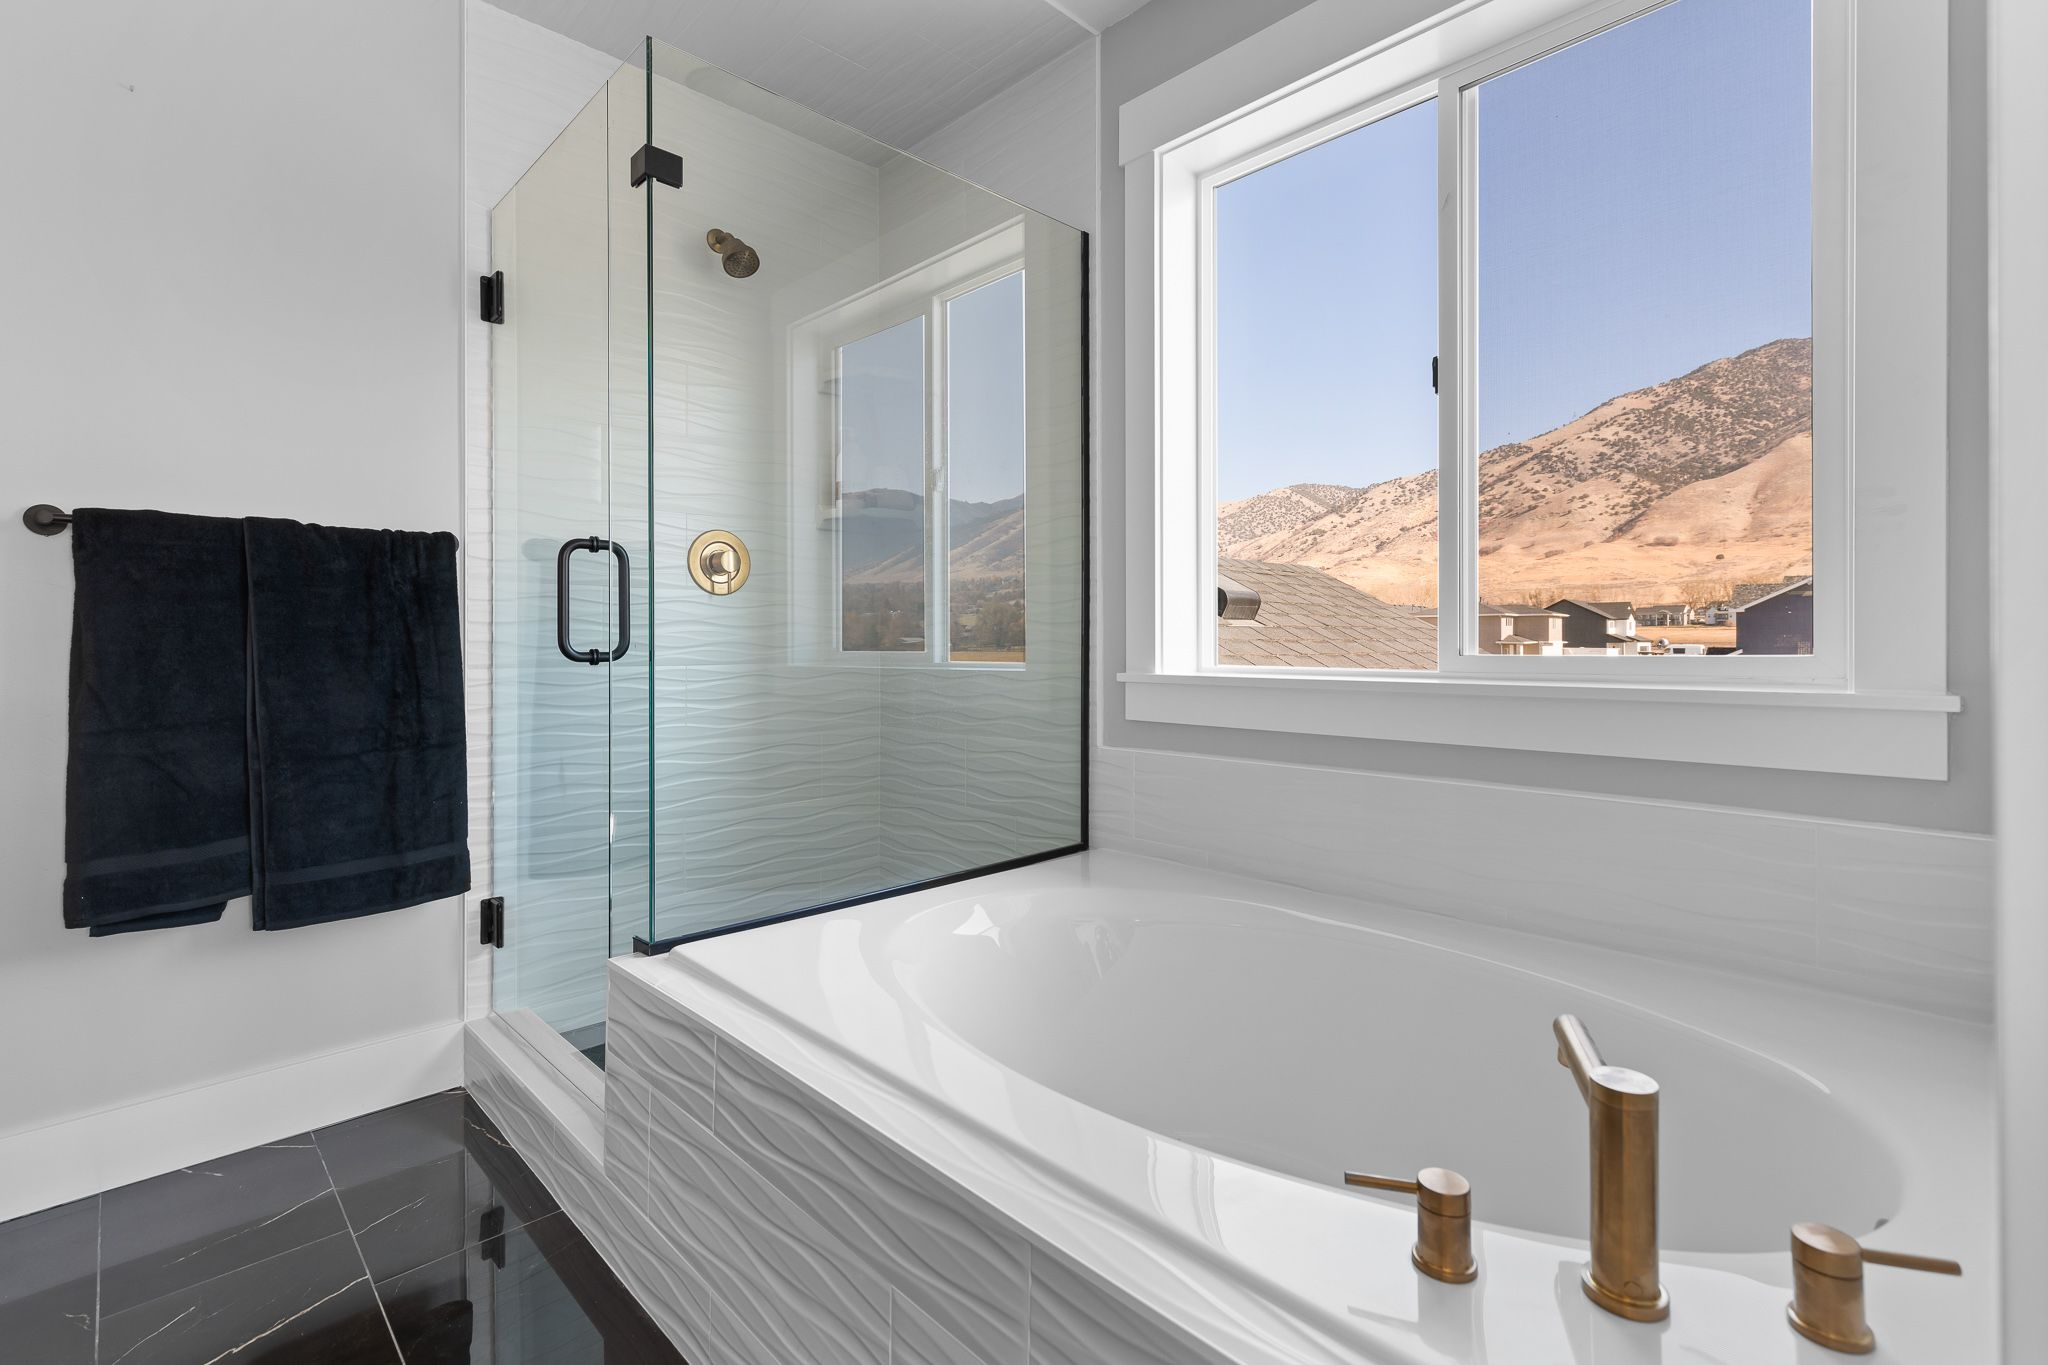 Bathroom featured in the Madison (Basement) By Visionary Homes in Logan, UT